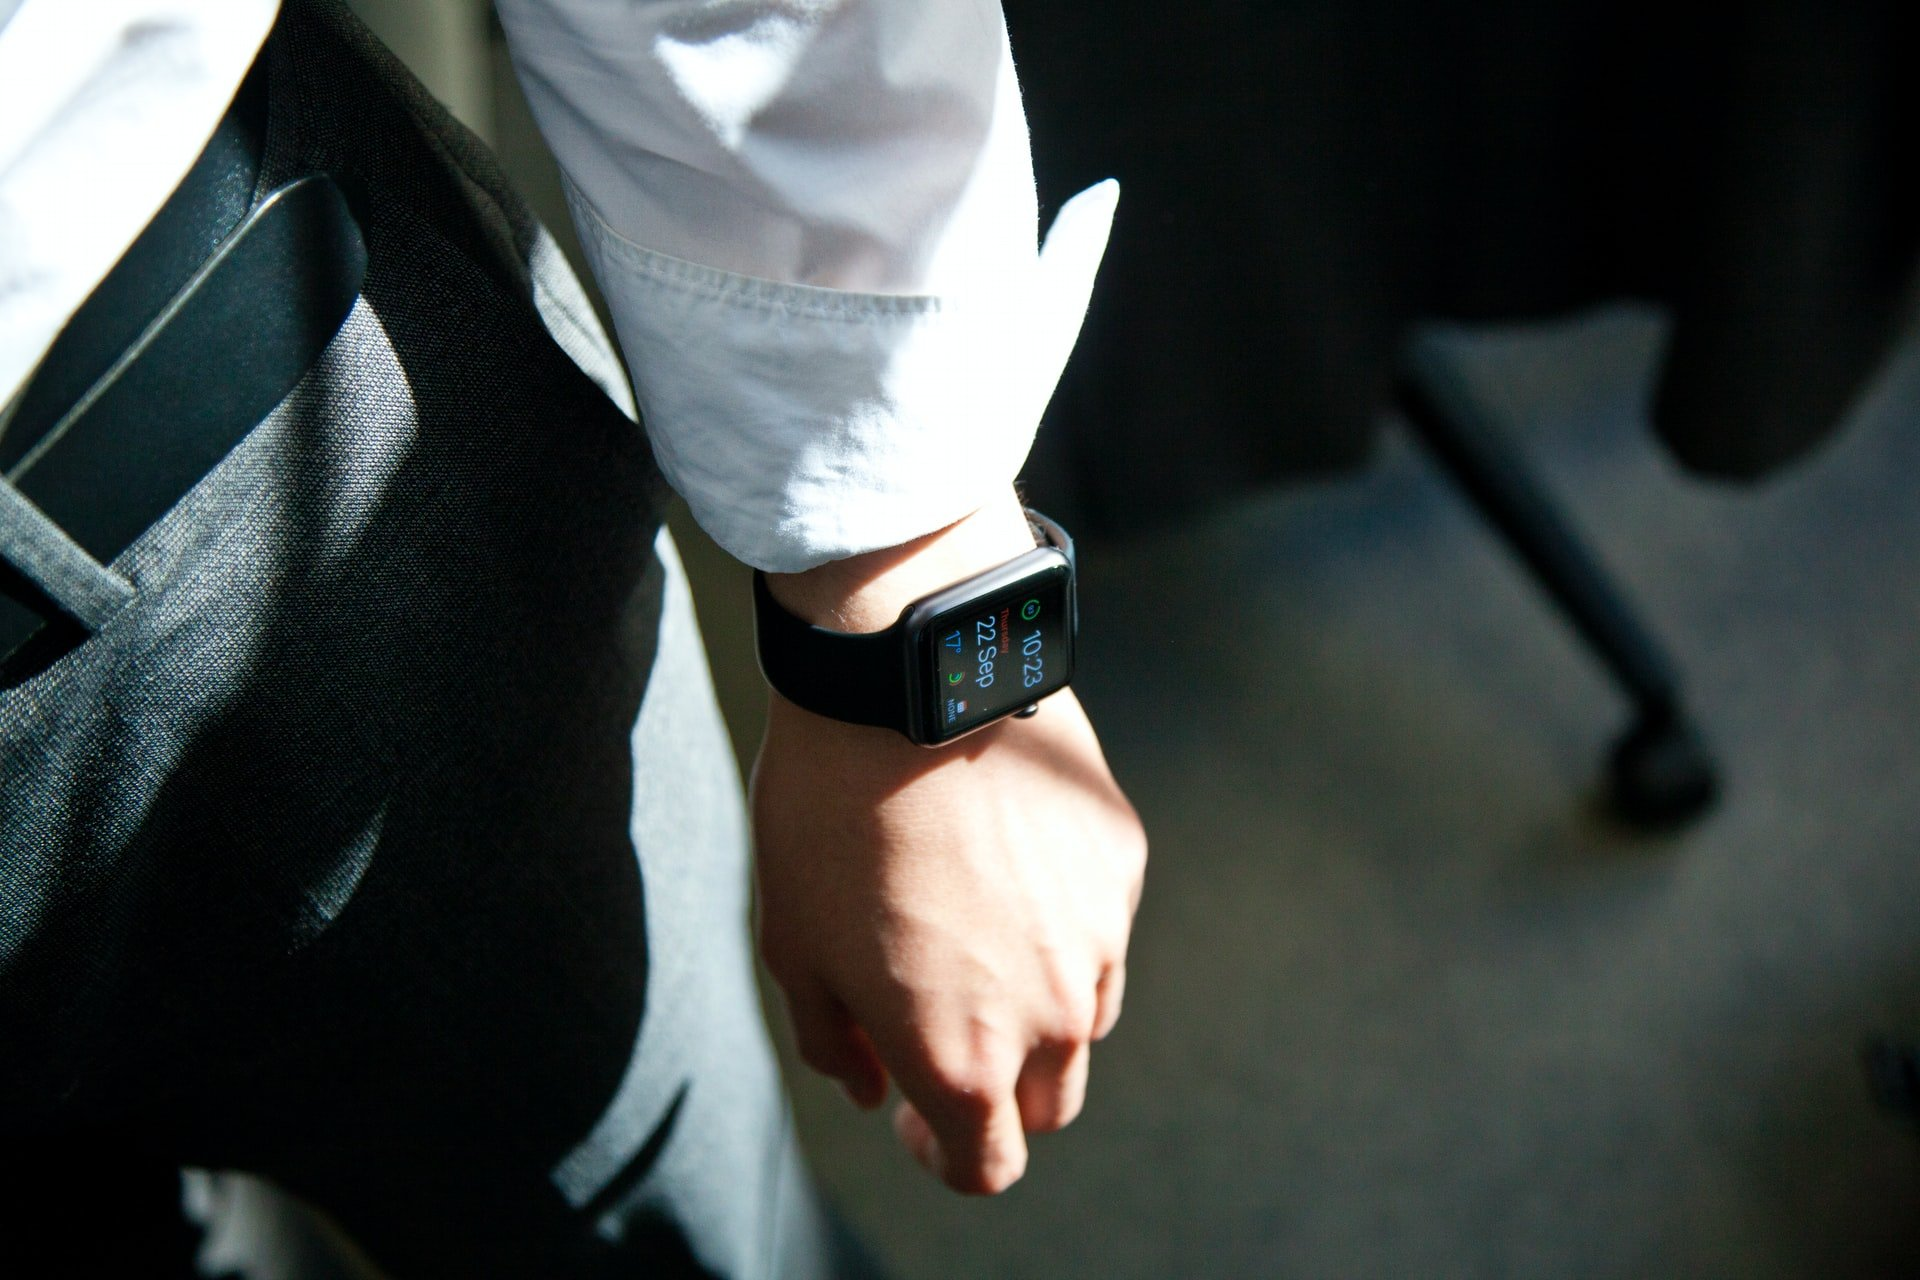 A Guide On Buying a Gentleman's Smartwatch